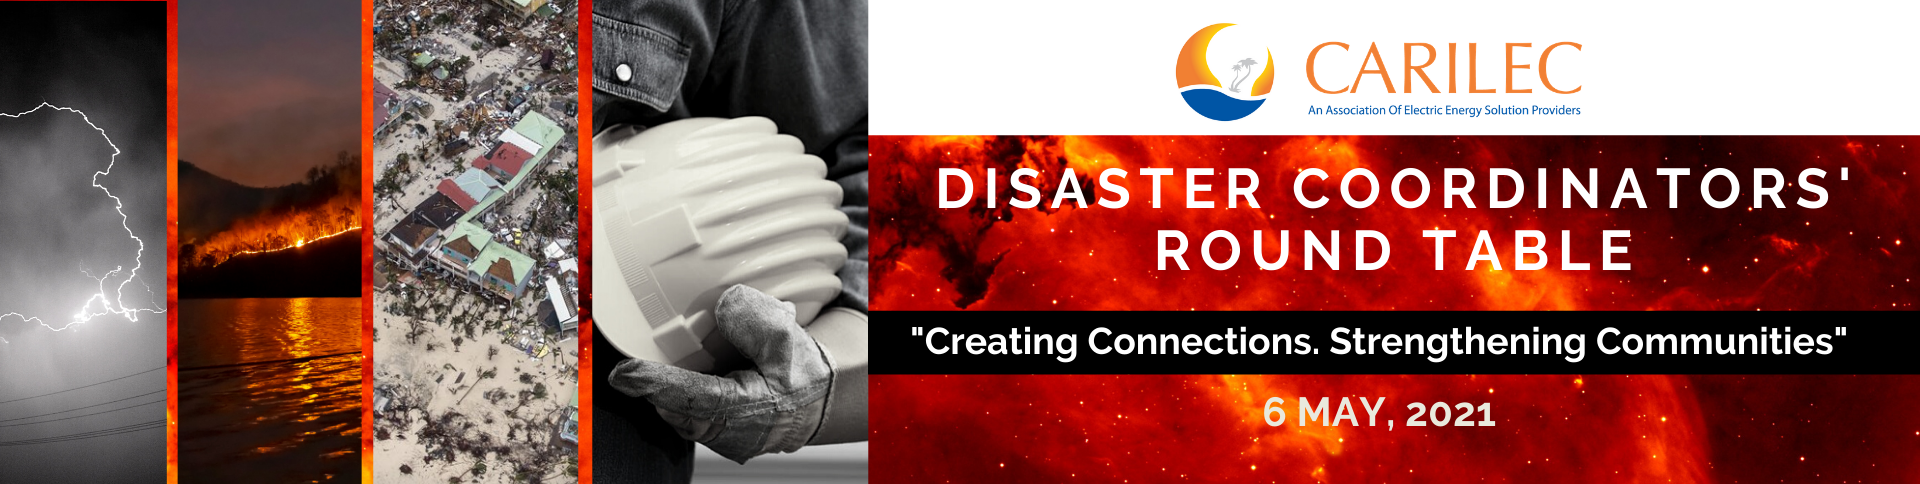 Disaster Coordinators' Round Table & Simulation Exercise 2021